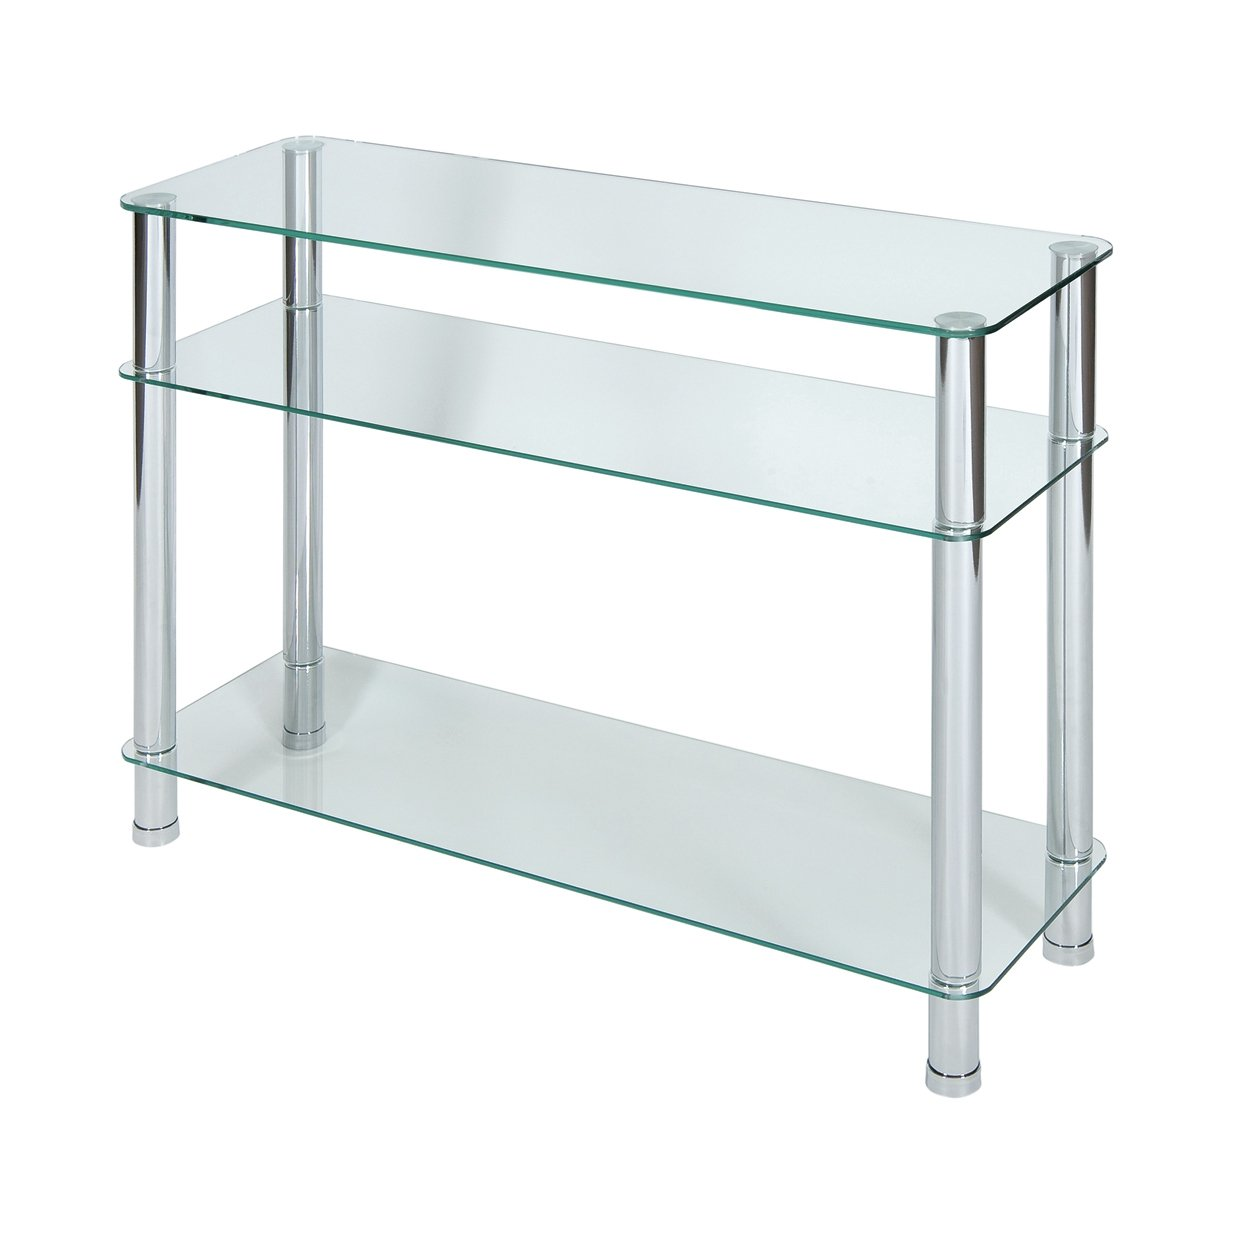 Hygena matrix black glass shelving unit built in bookcase for White and glass console table